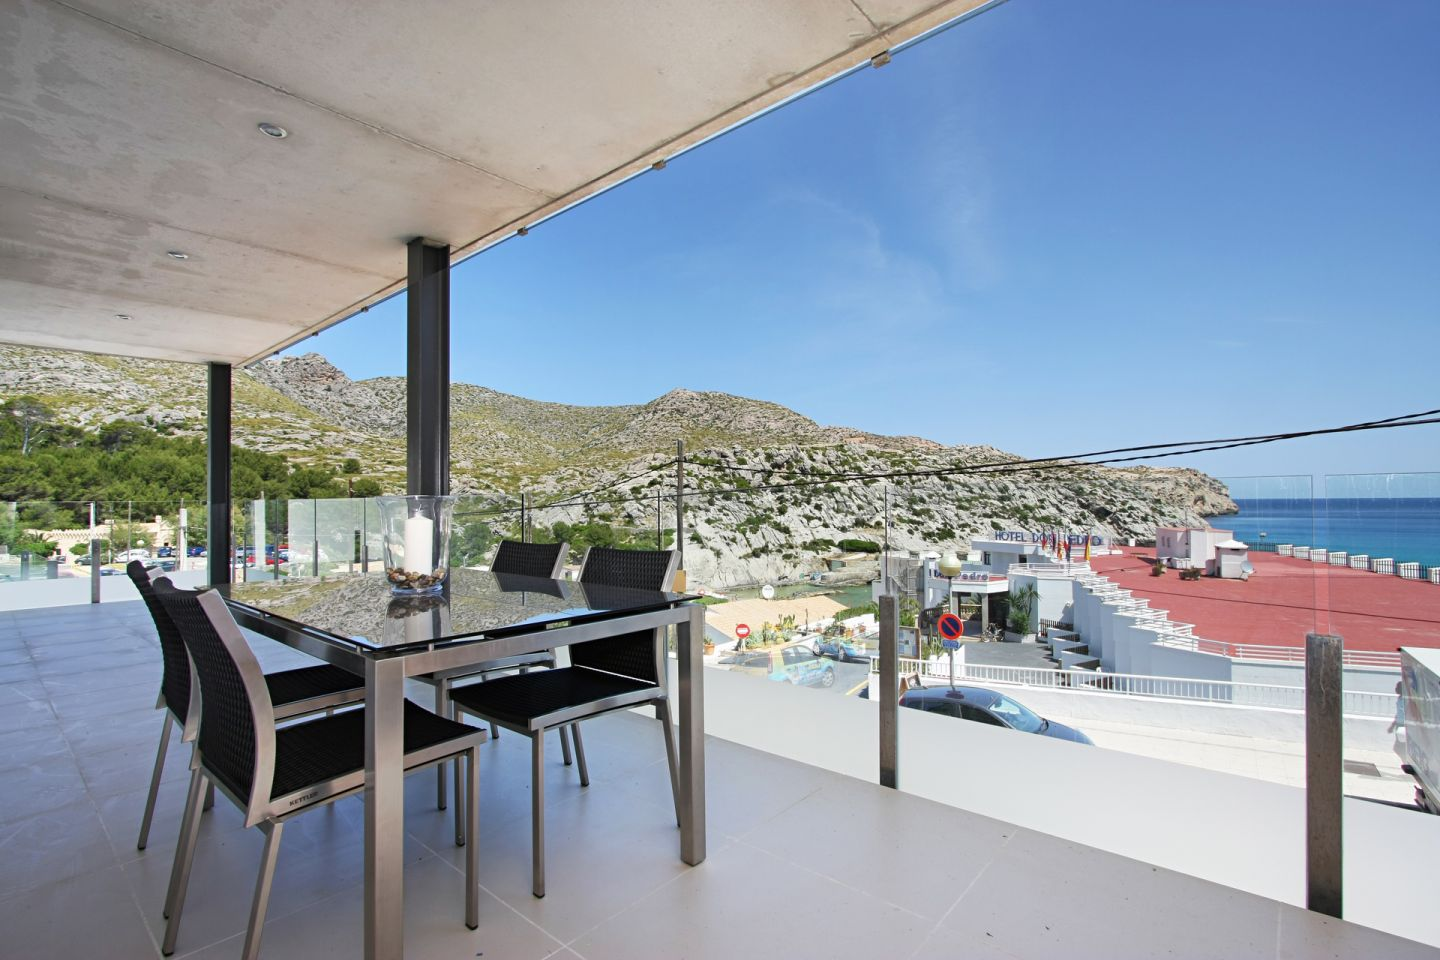 2 Bed Penthouse for sale in Cala San Vicente 8